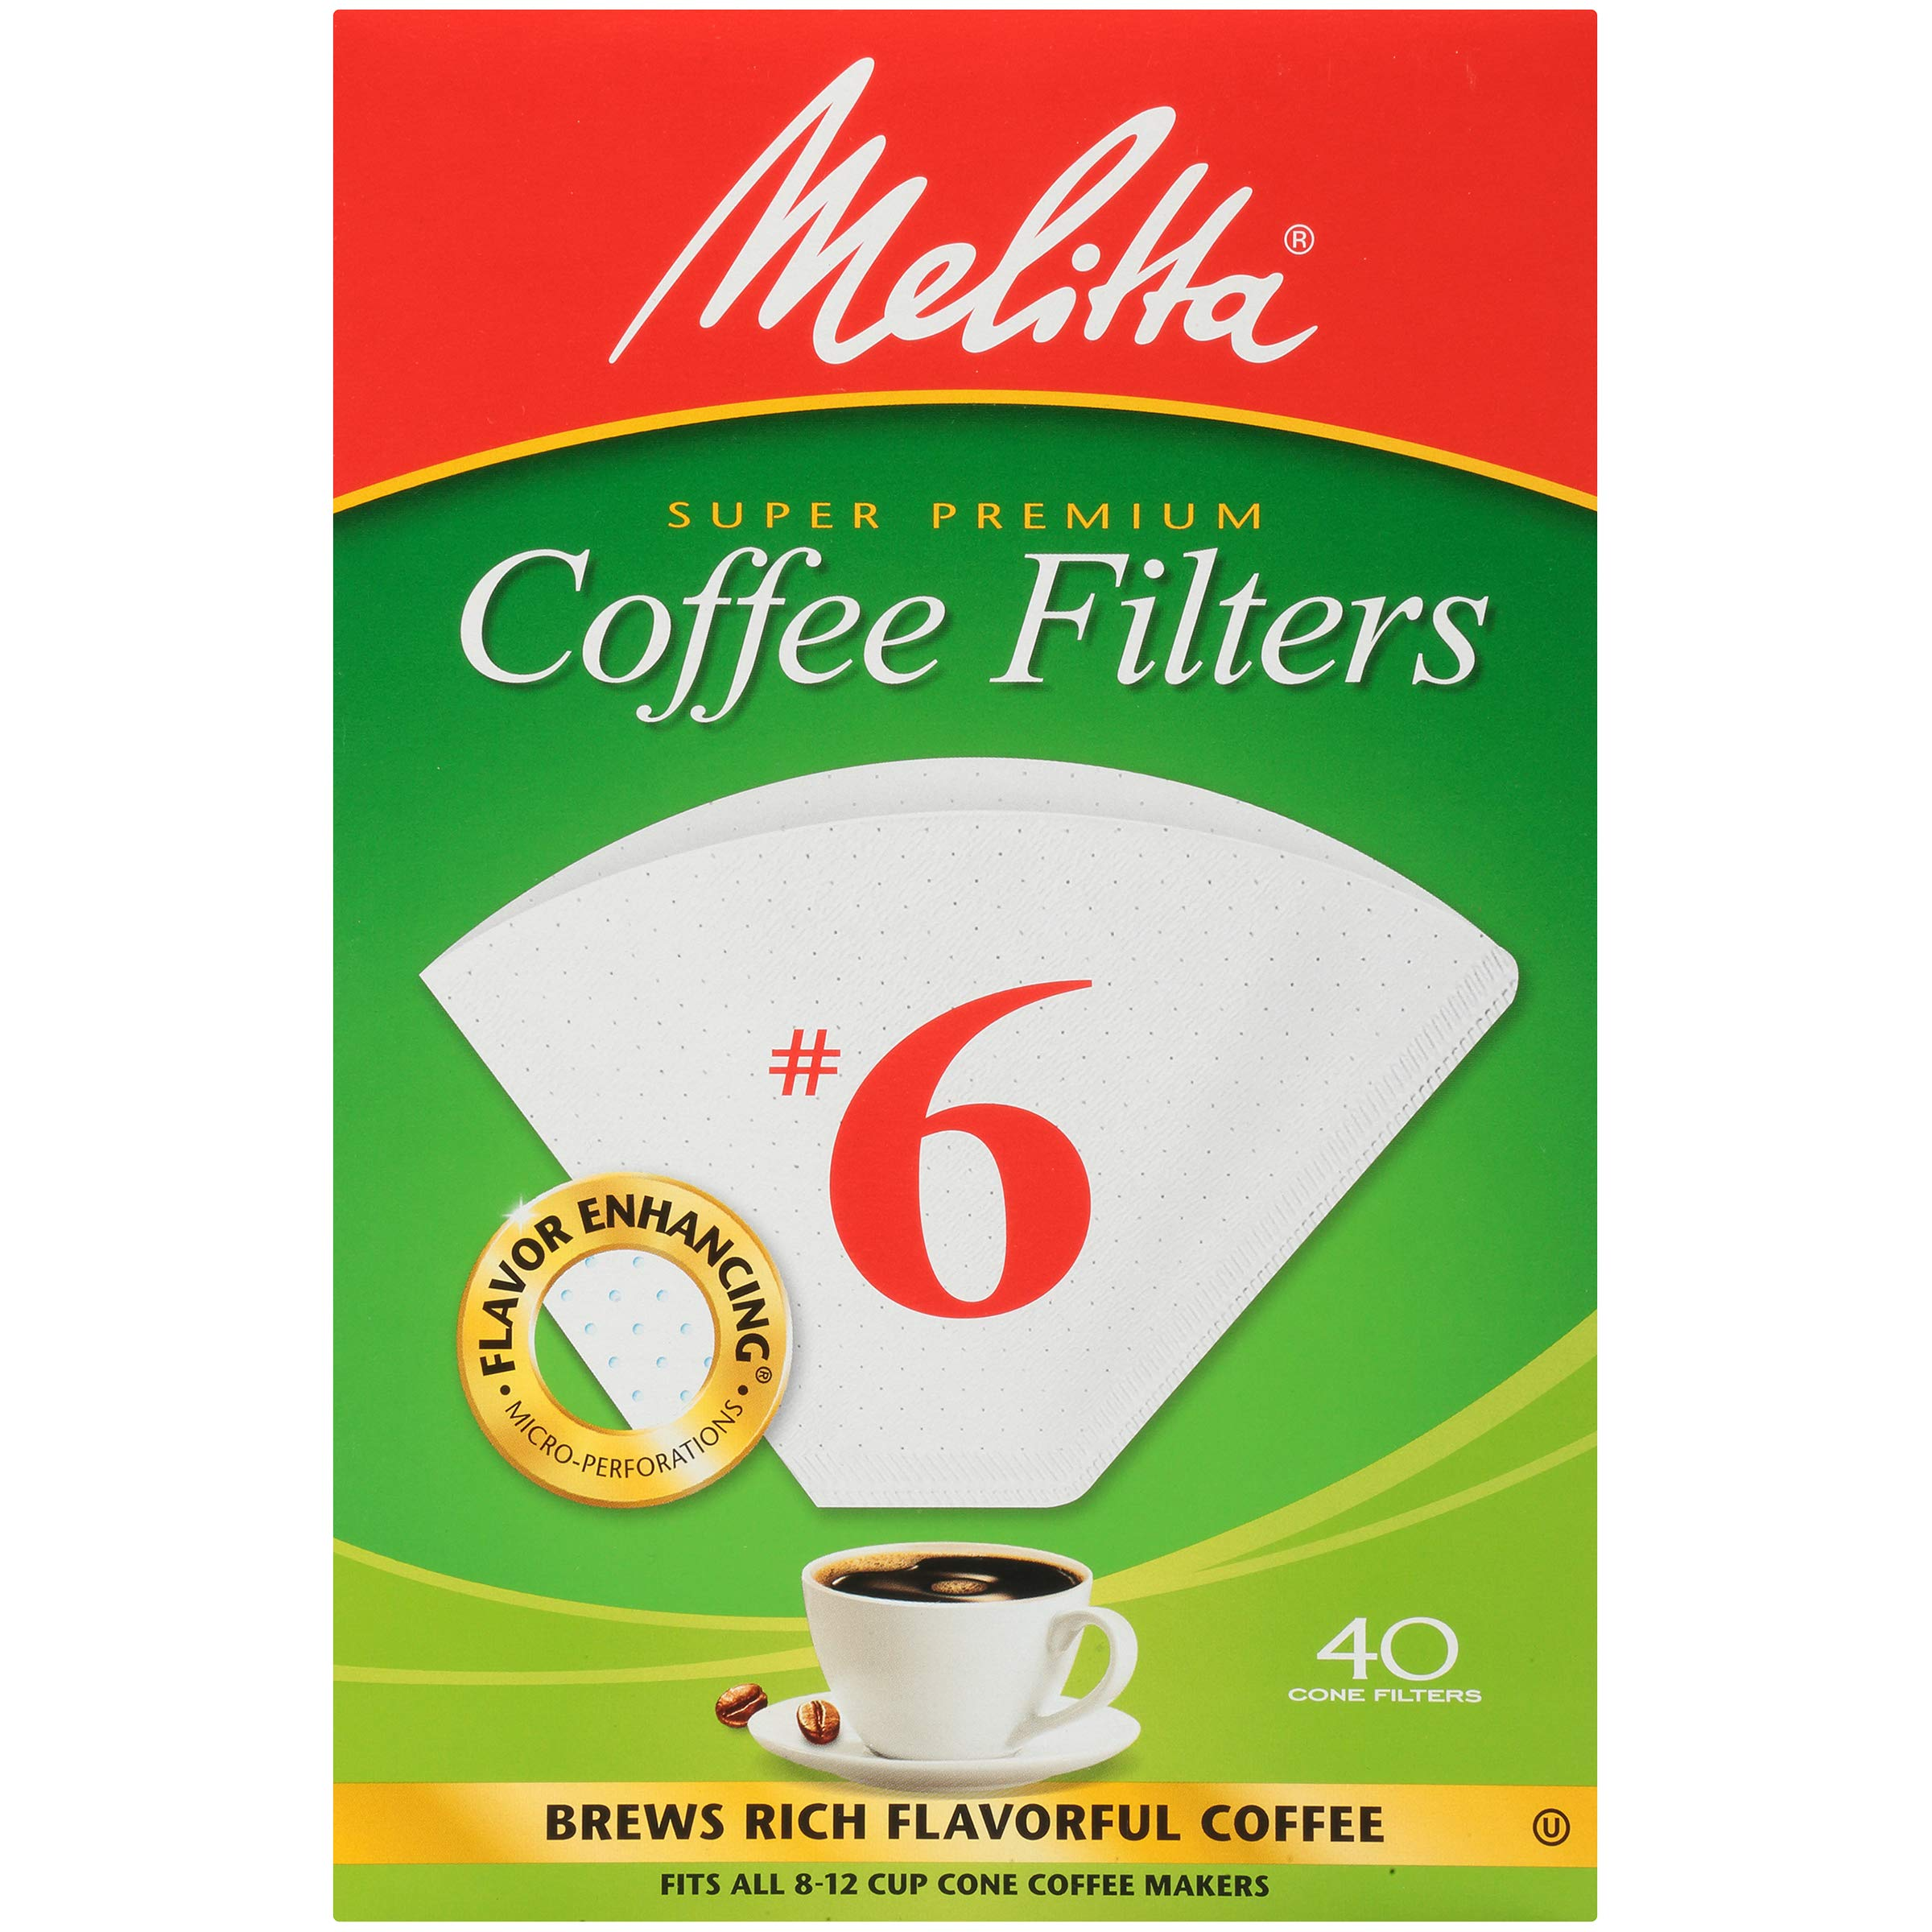 Melitta (626402C) #6 Super Premium Cone Coffee Filters, White, 40 Count (Pack of 12) Replacement Coffee Maker Filters